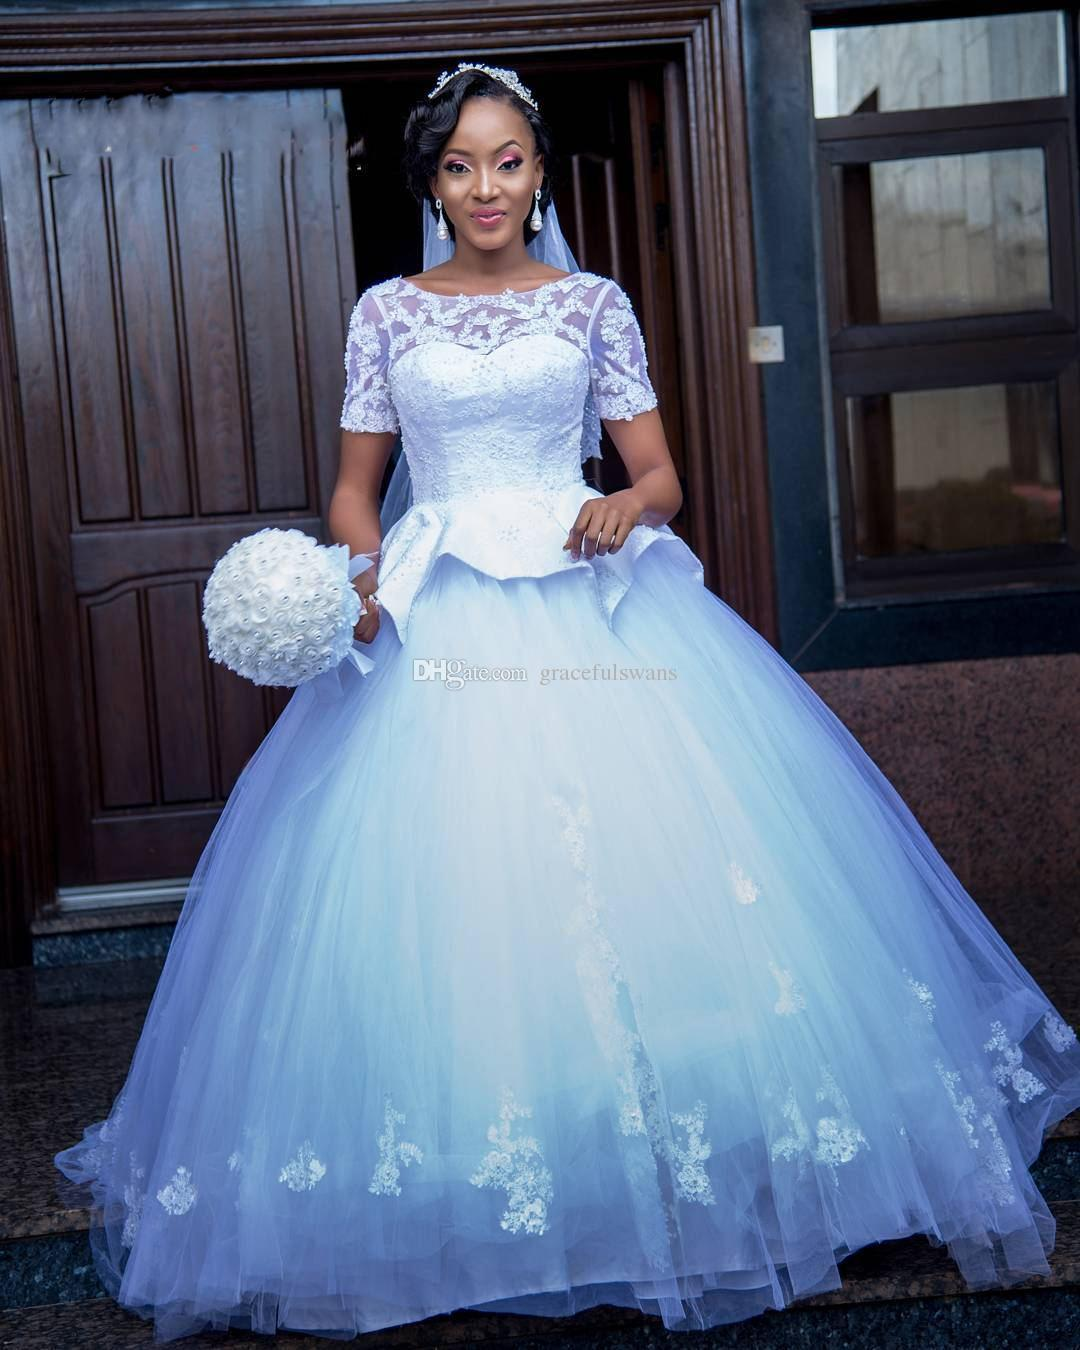 Short Sleeve Ball Gown Wedding Dresses African Scoop Lace Appliques